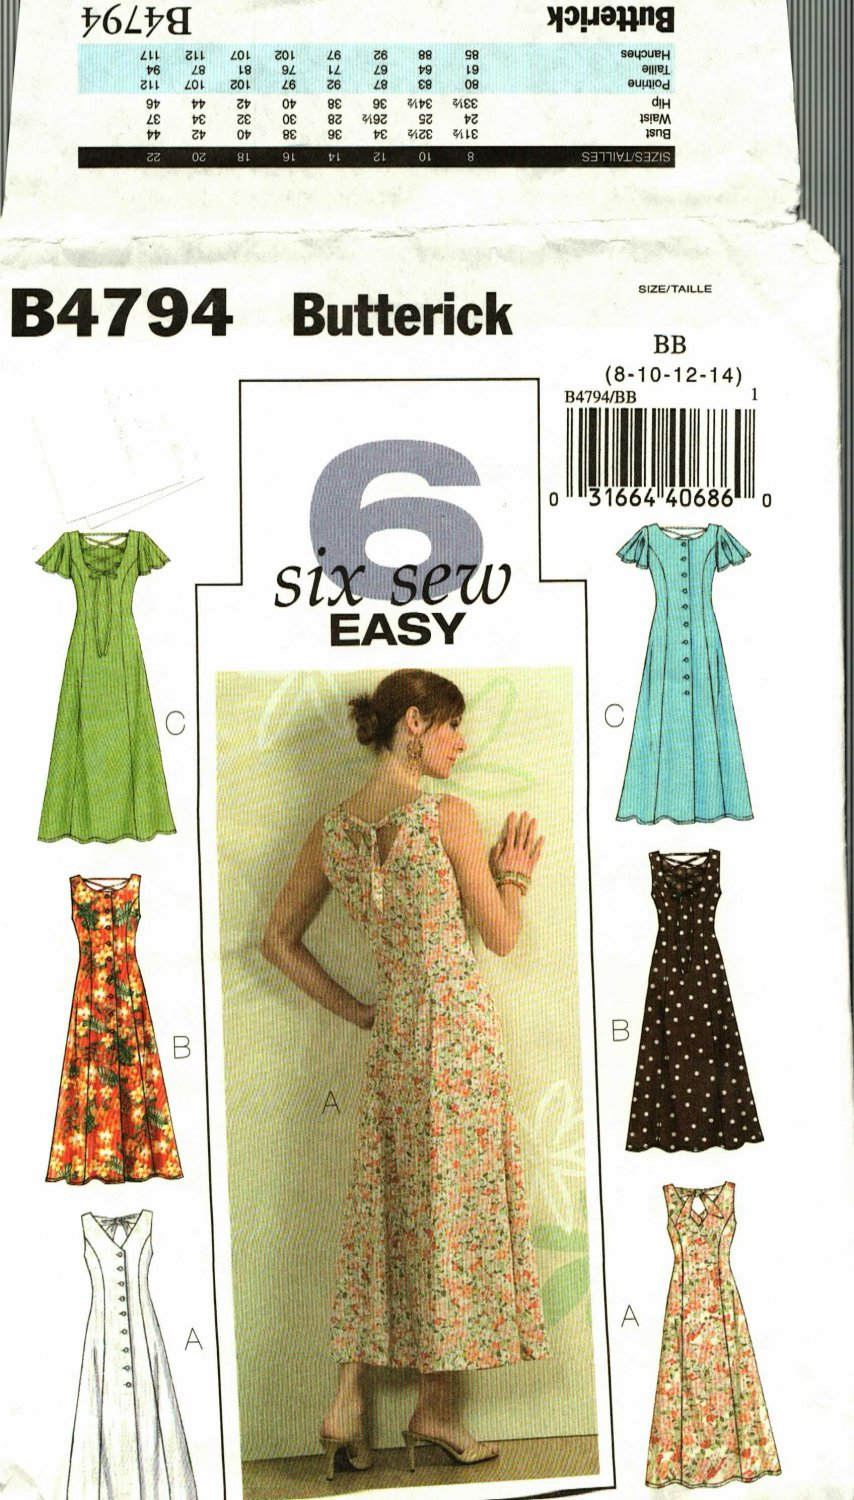 Butterick B4794 Pattern uncut 8 10 12 14 Sun Dress Lace Up Back Sleeveless Flutter Sleeves